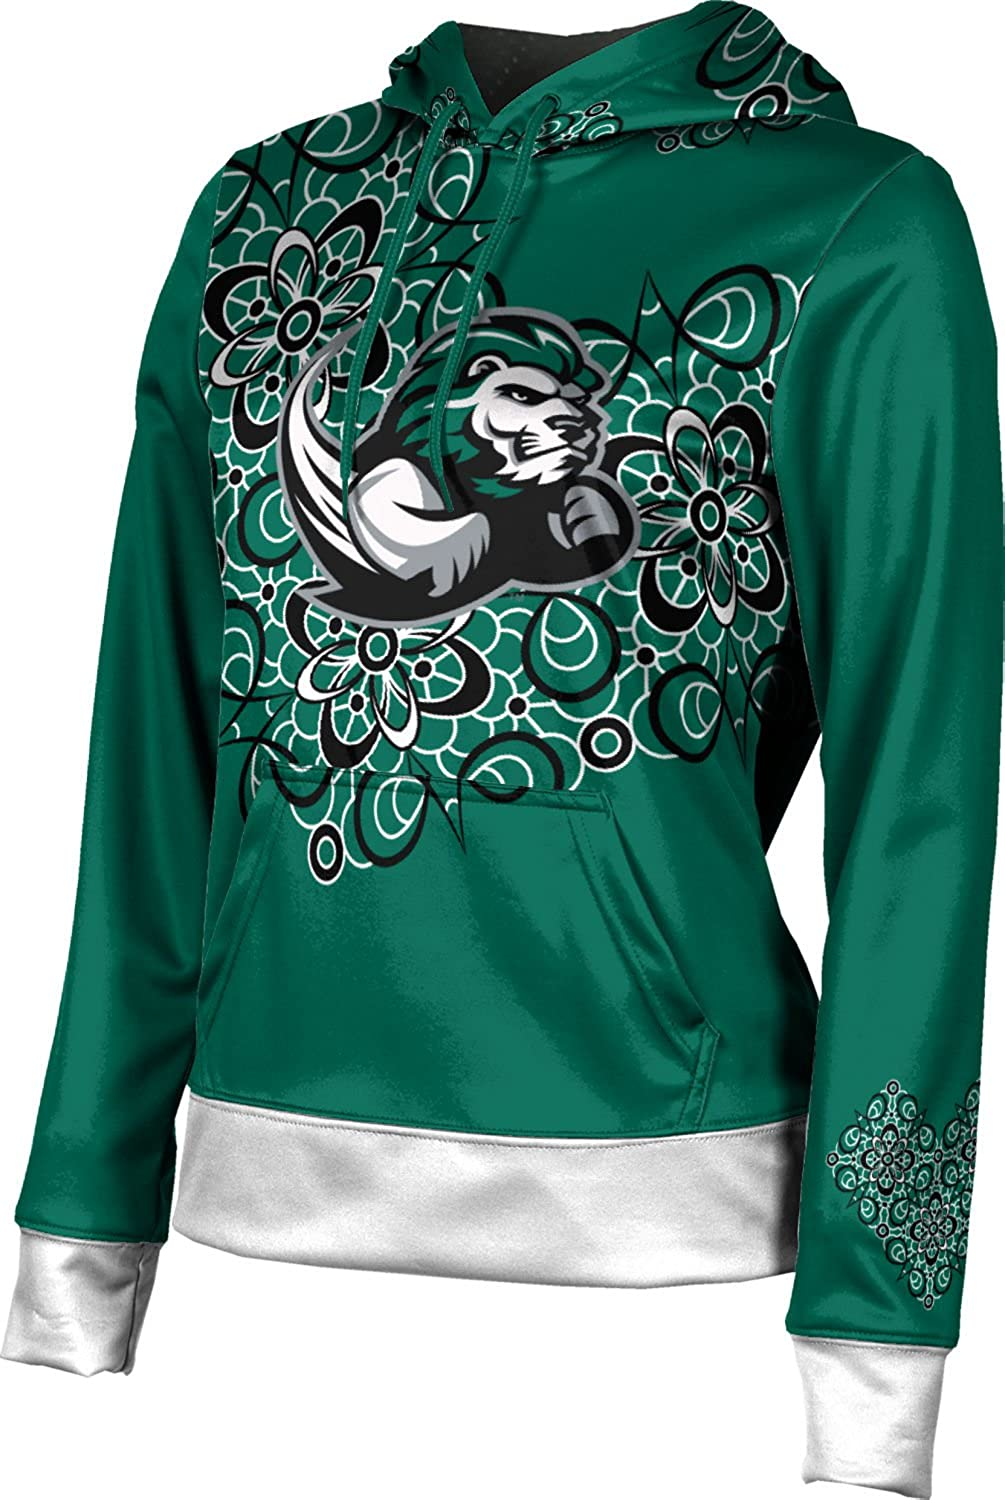 School Spirit Sweatshirt Foxy Slippery Rock University Girls Pullover Hoodie